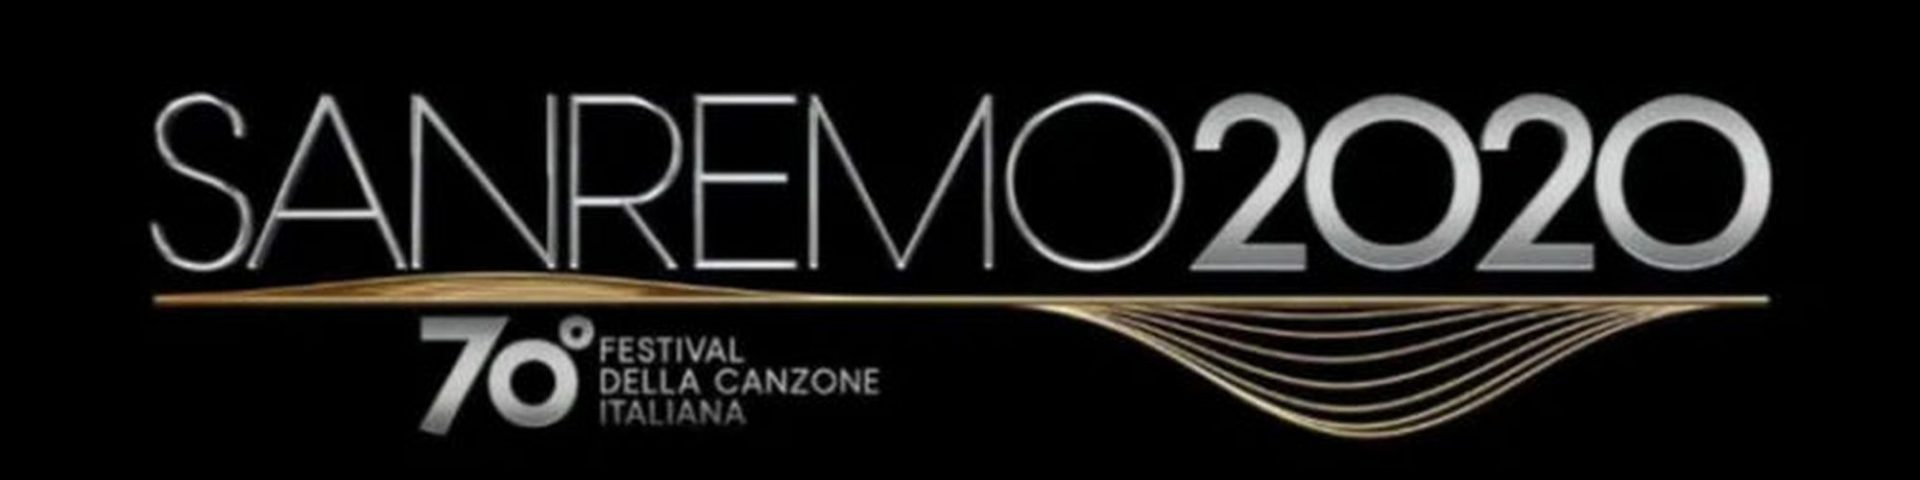 Sanremo 2020: classifica generale dopo la serata cover